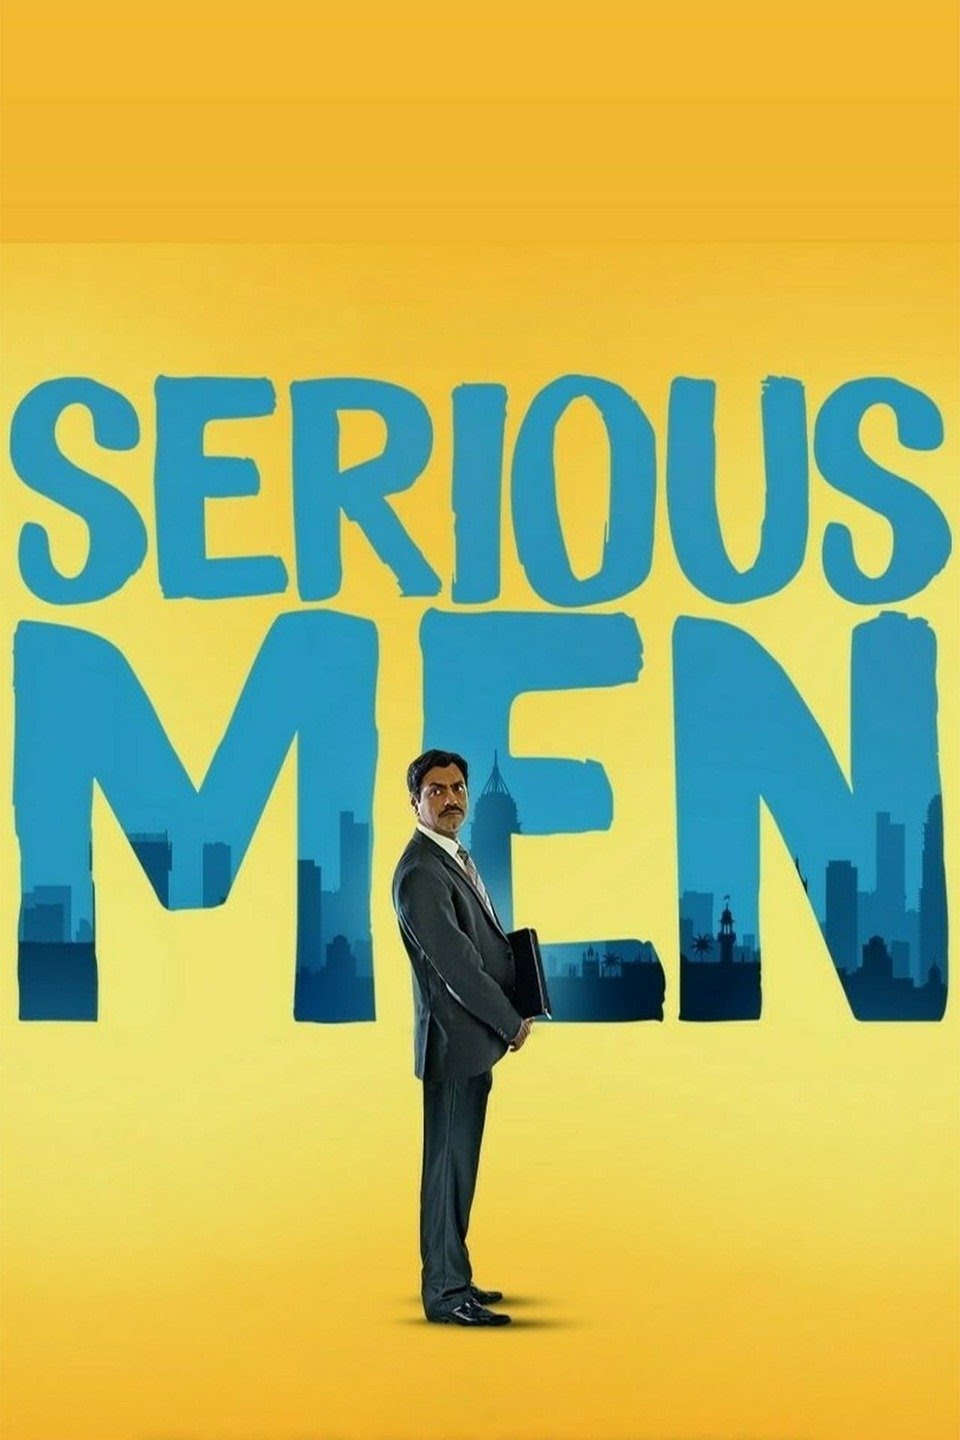 Serious Men (2020) Hindi WEB-DL 480p 720p 1080p DD5.1 x264/ESubs HD | Full Movie [NetFlix Film]